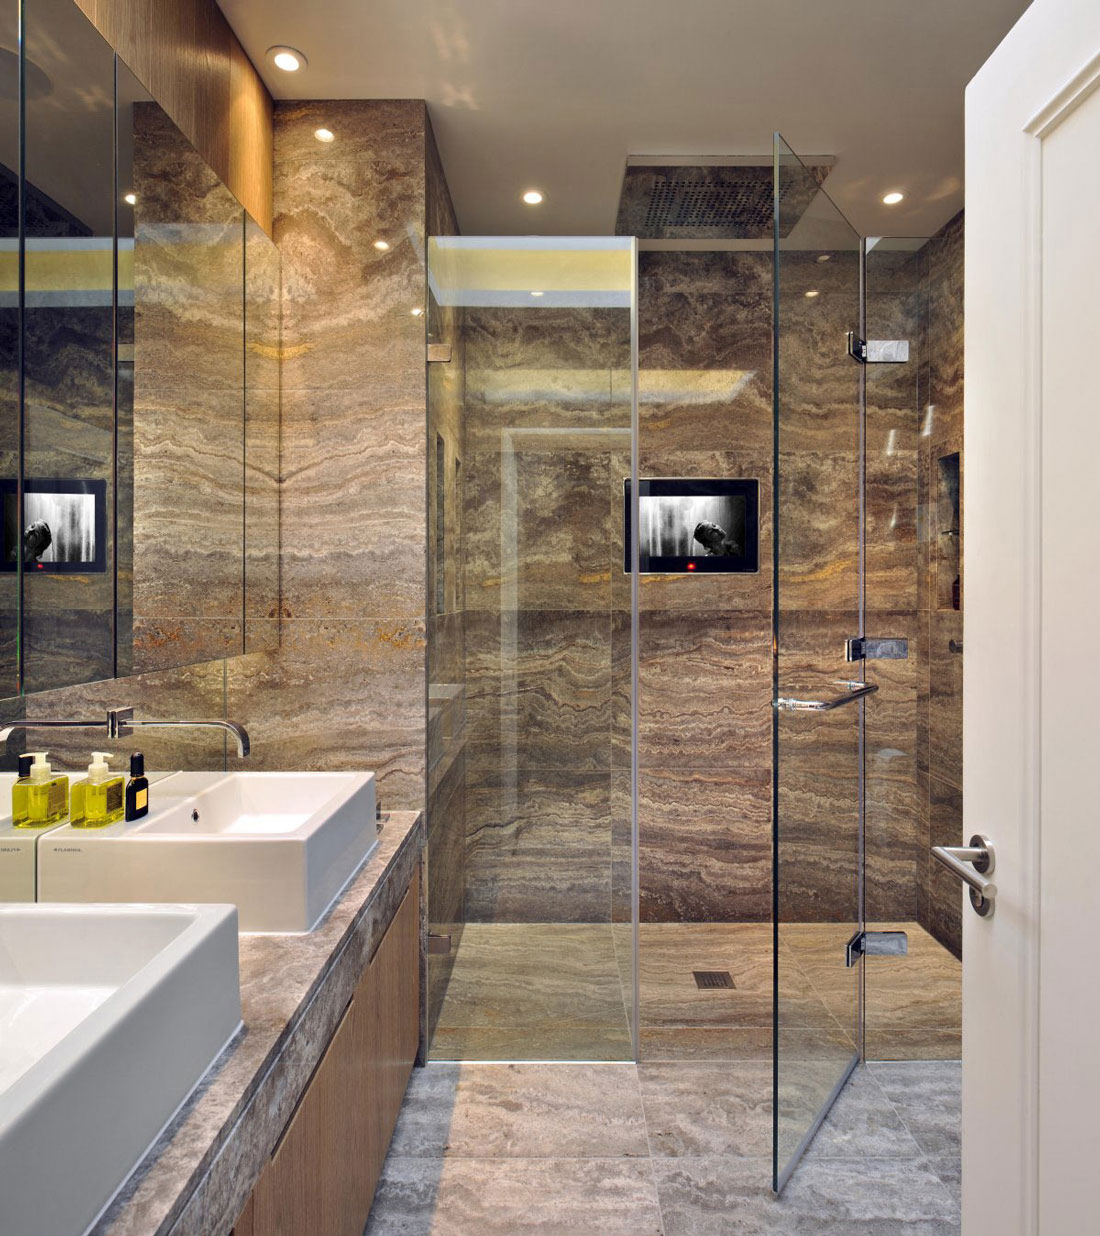 St pancras penthouse apartment in london - Bathroom design london ...